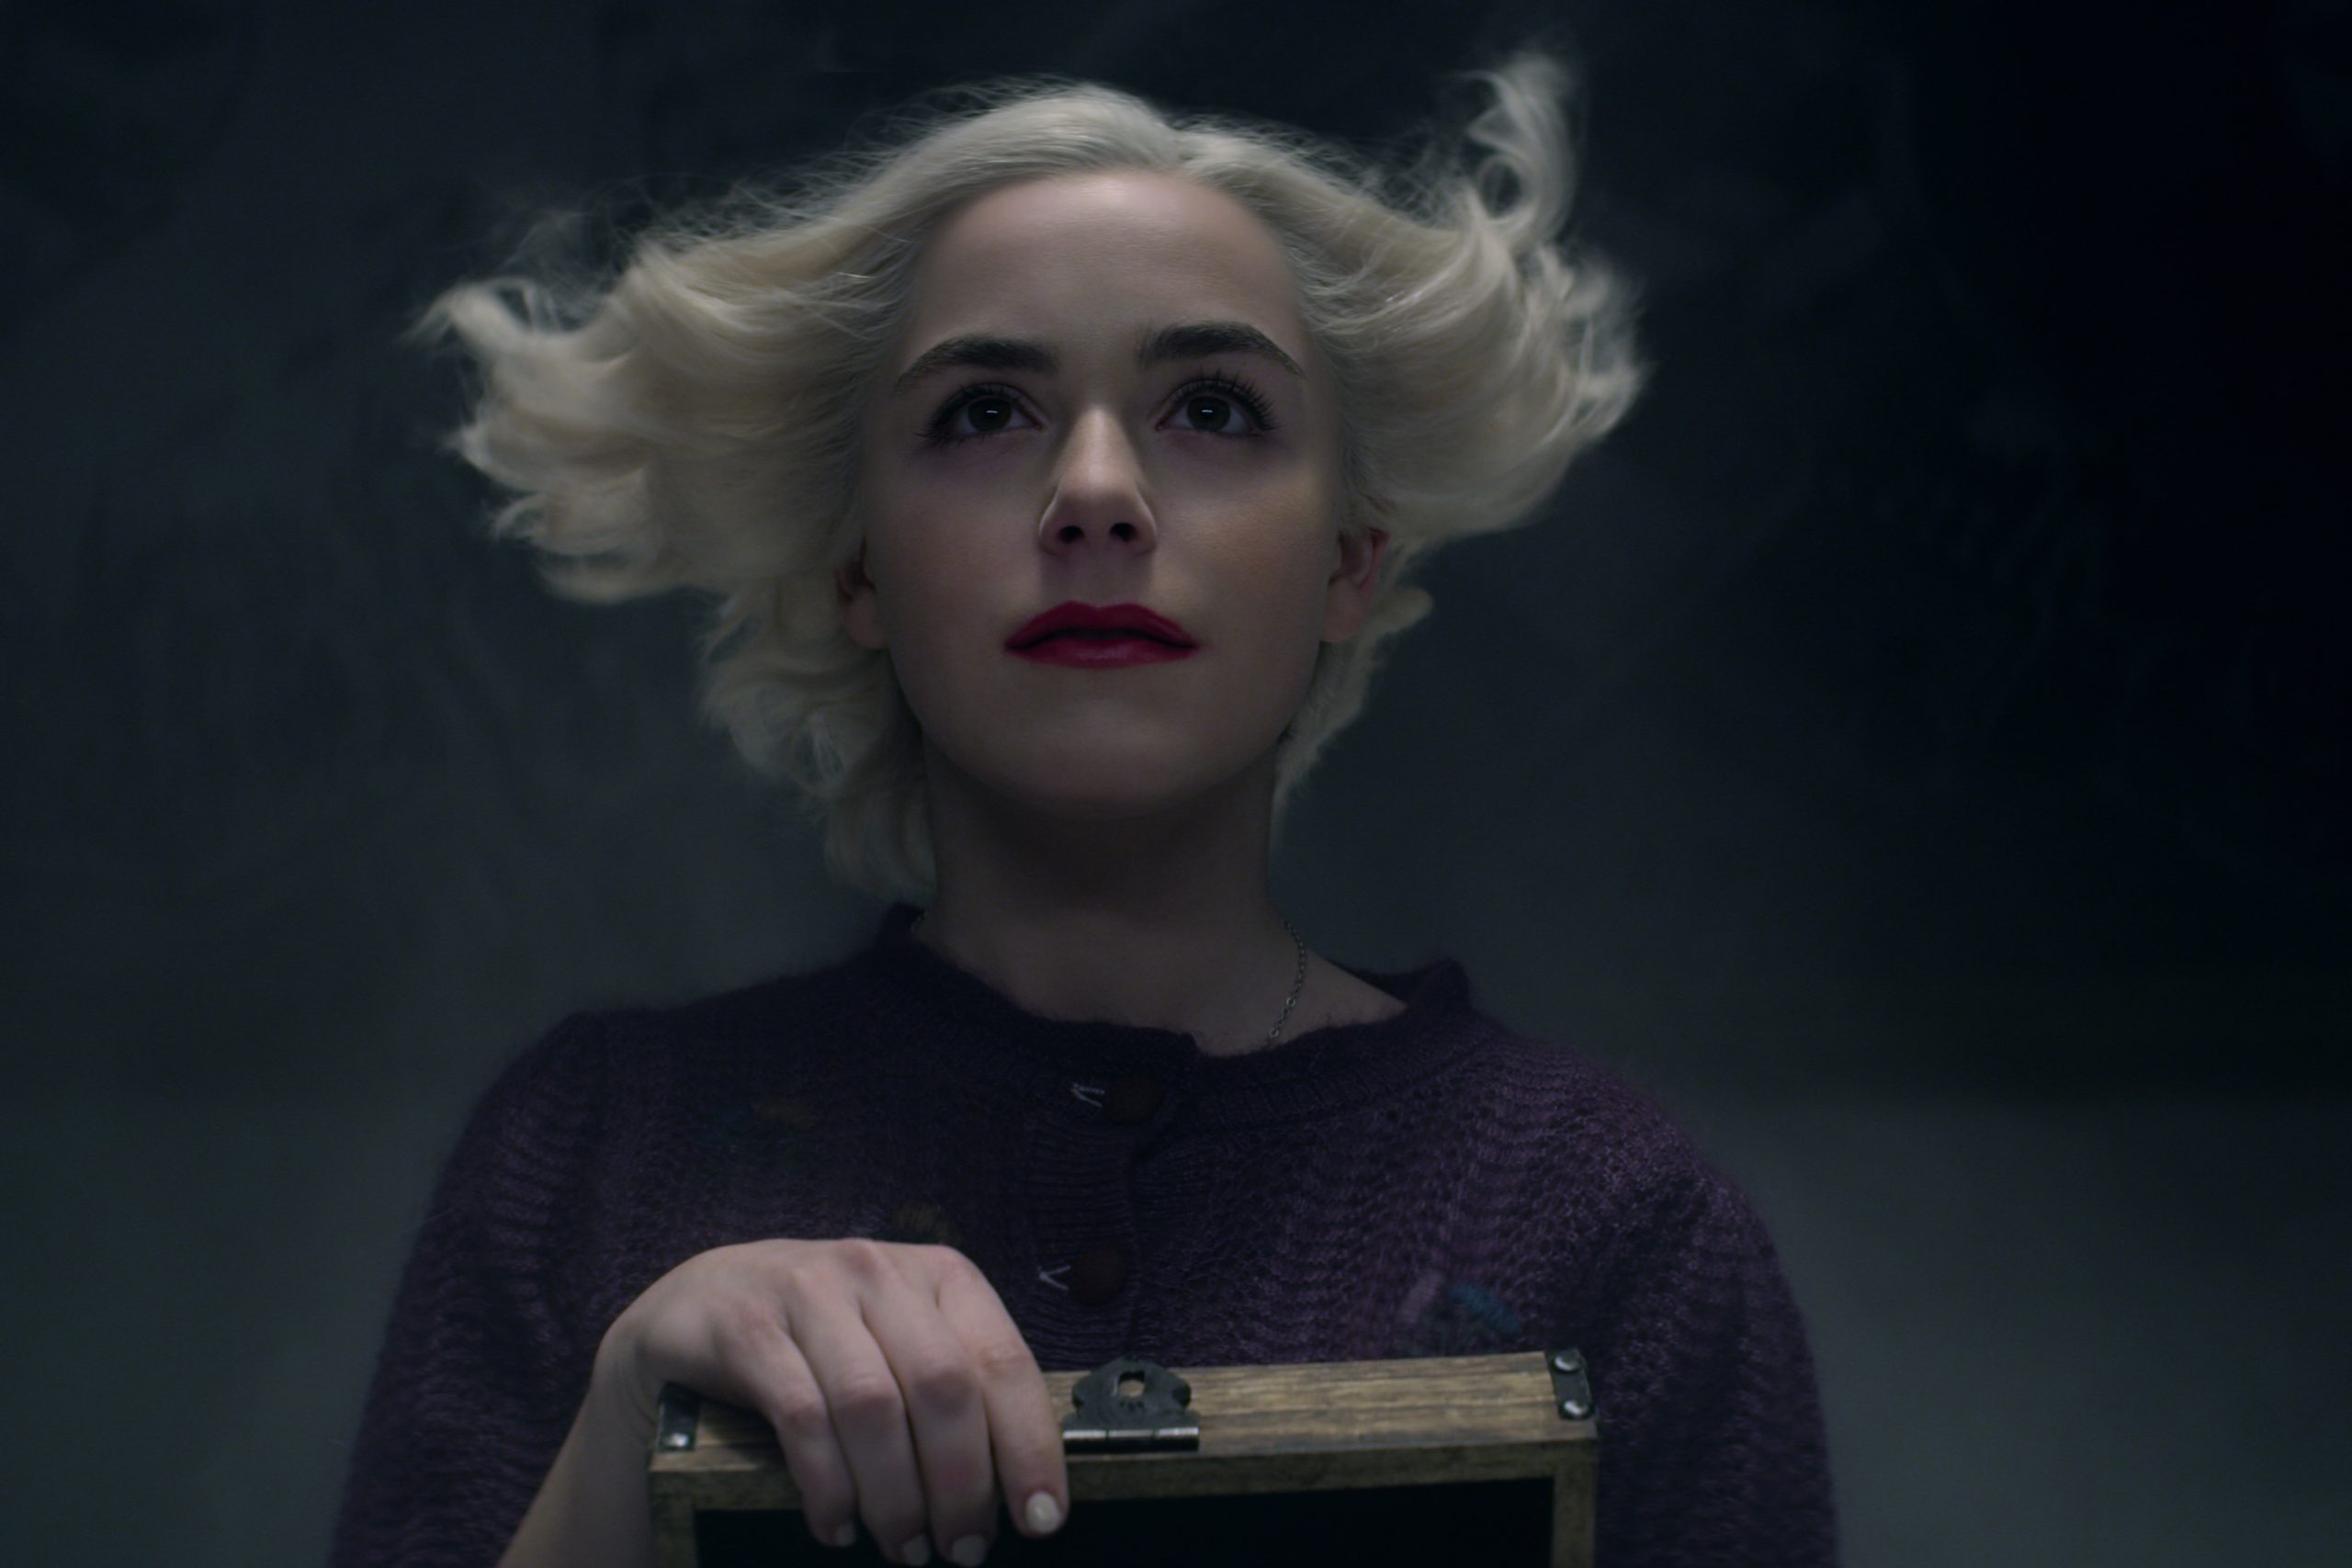 New 'Chilling Adventures of Sabrina' trailer teases the beginning of the end